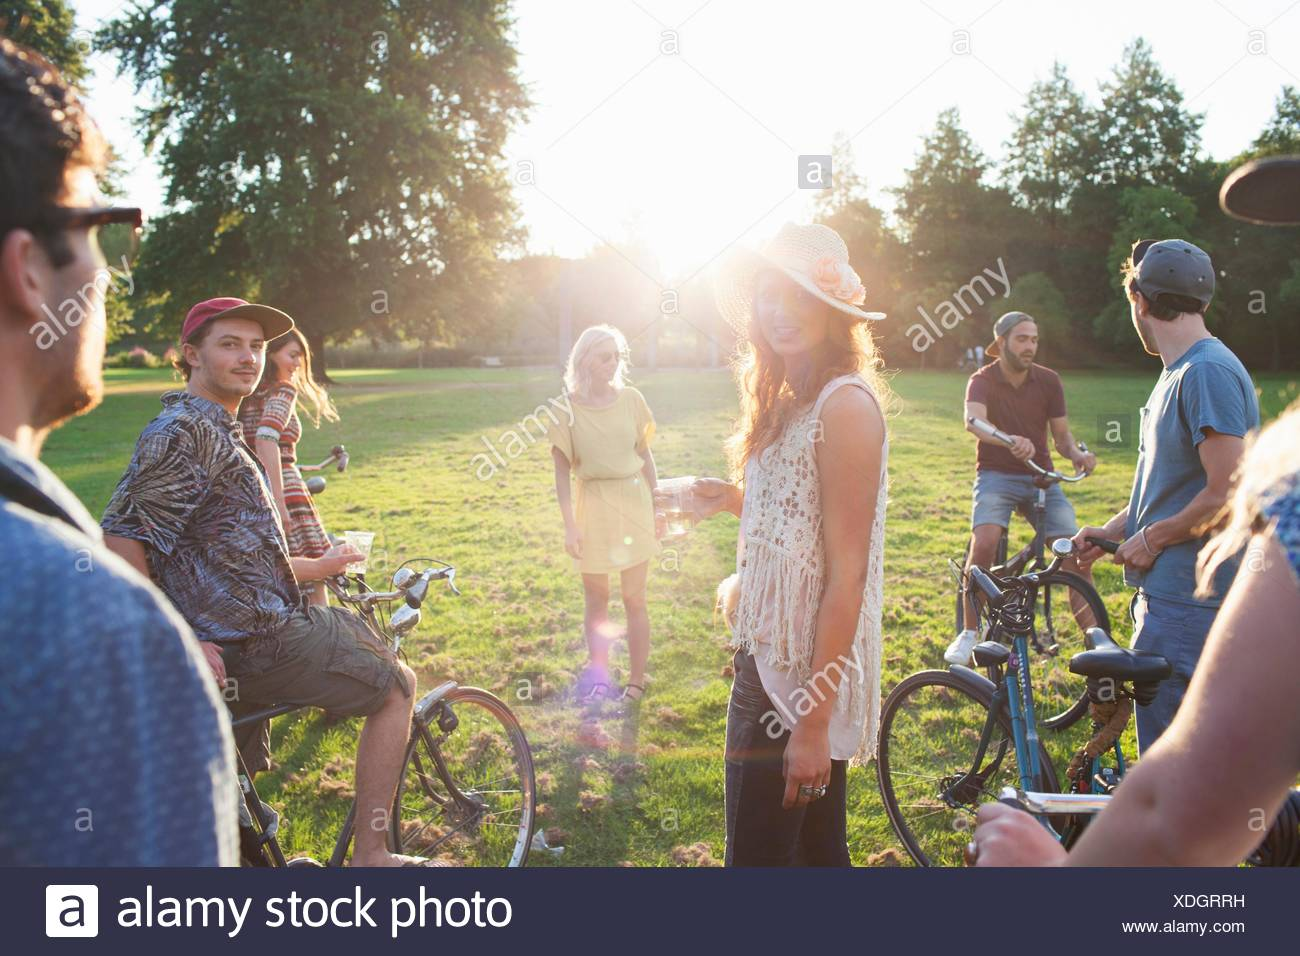 Group of party going adults arriving in park on bicycles at sunset - Stock Image